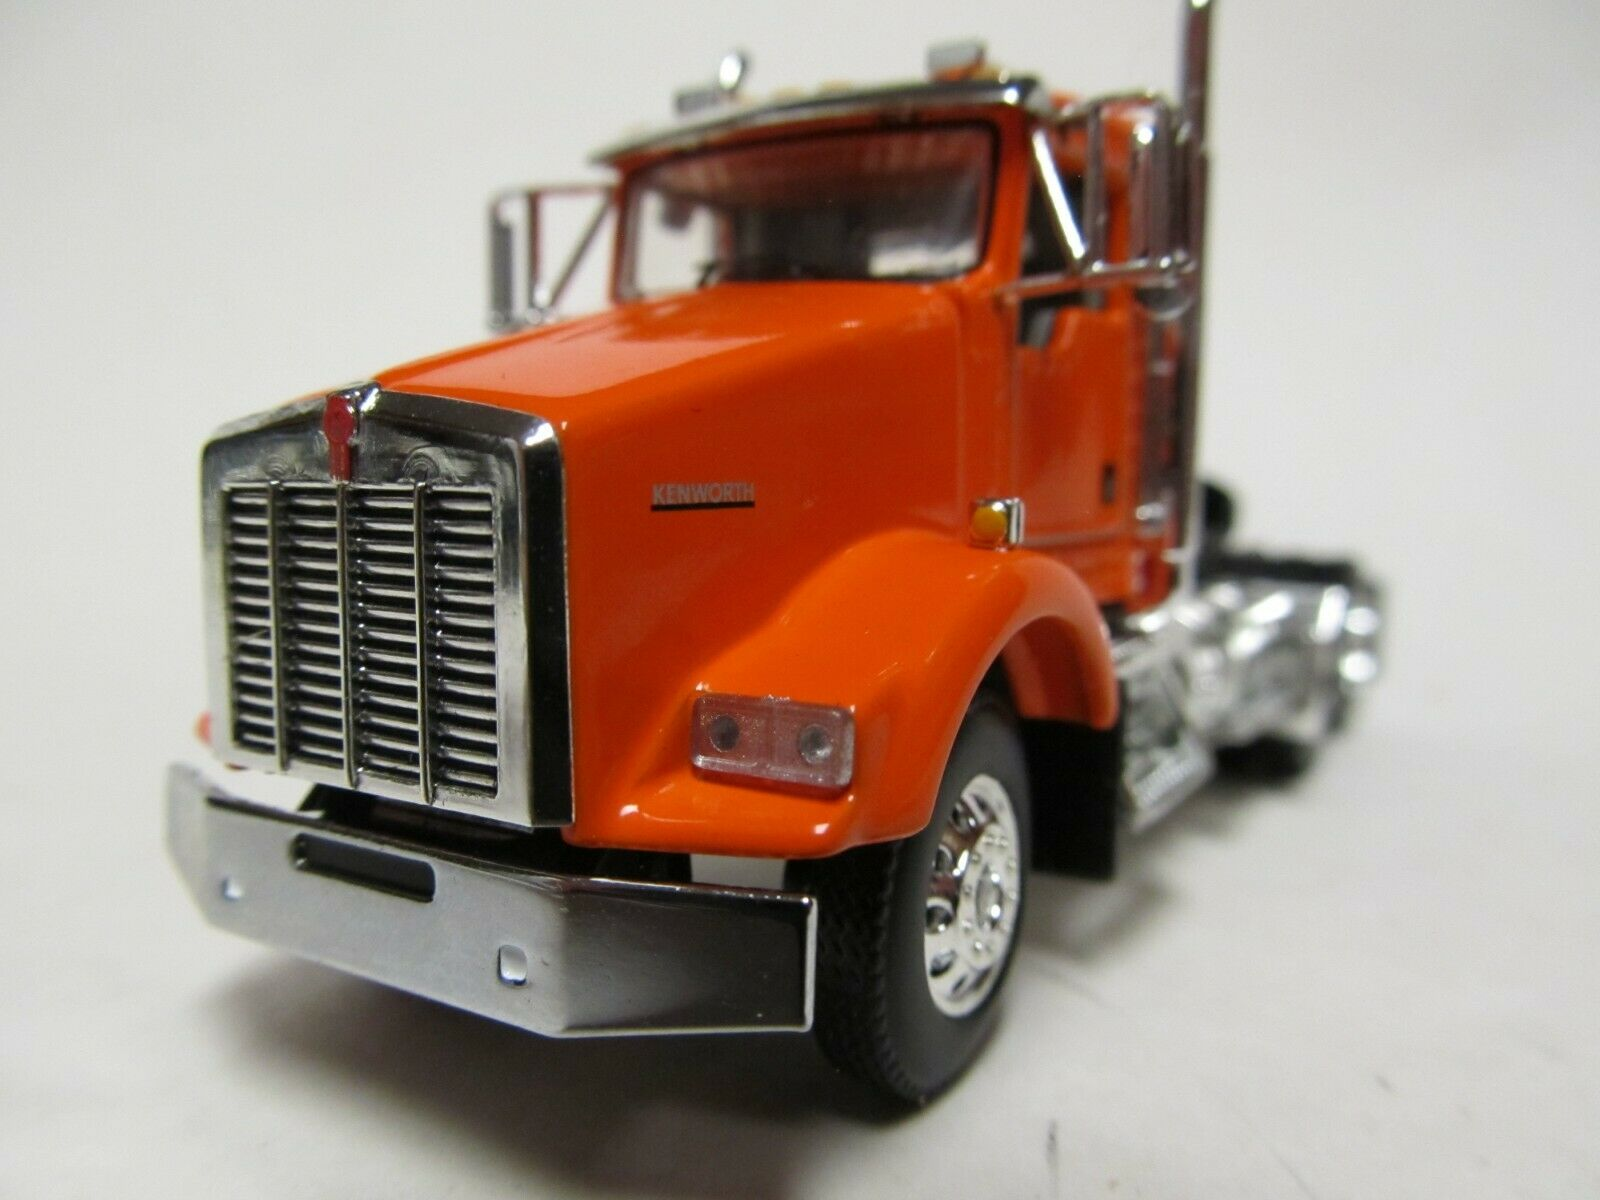 DCP / FIRST GEAR 1/64 SCALE T-800 KENWORTH DAY CAB, ORANGE, YELLOW ENGINE